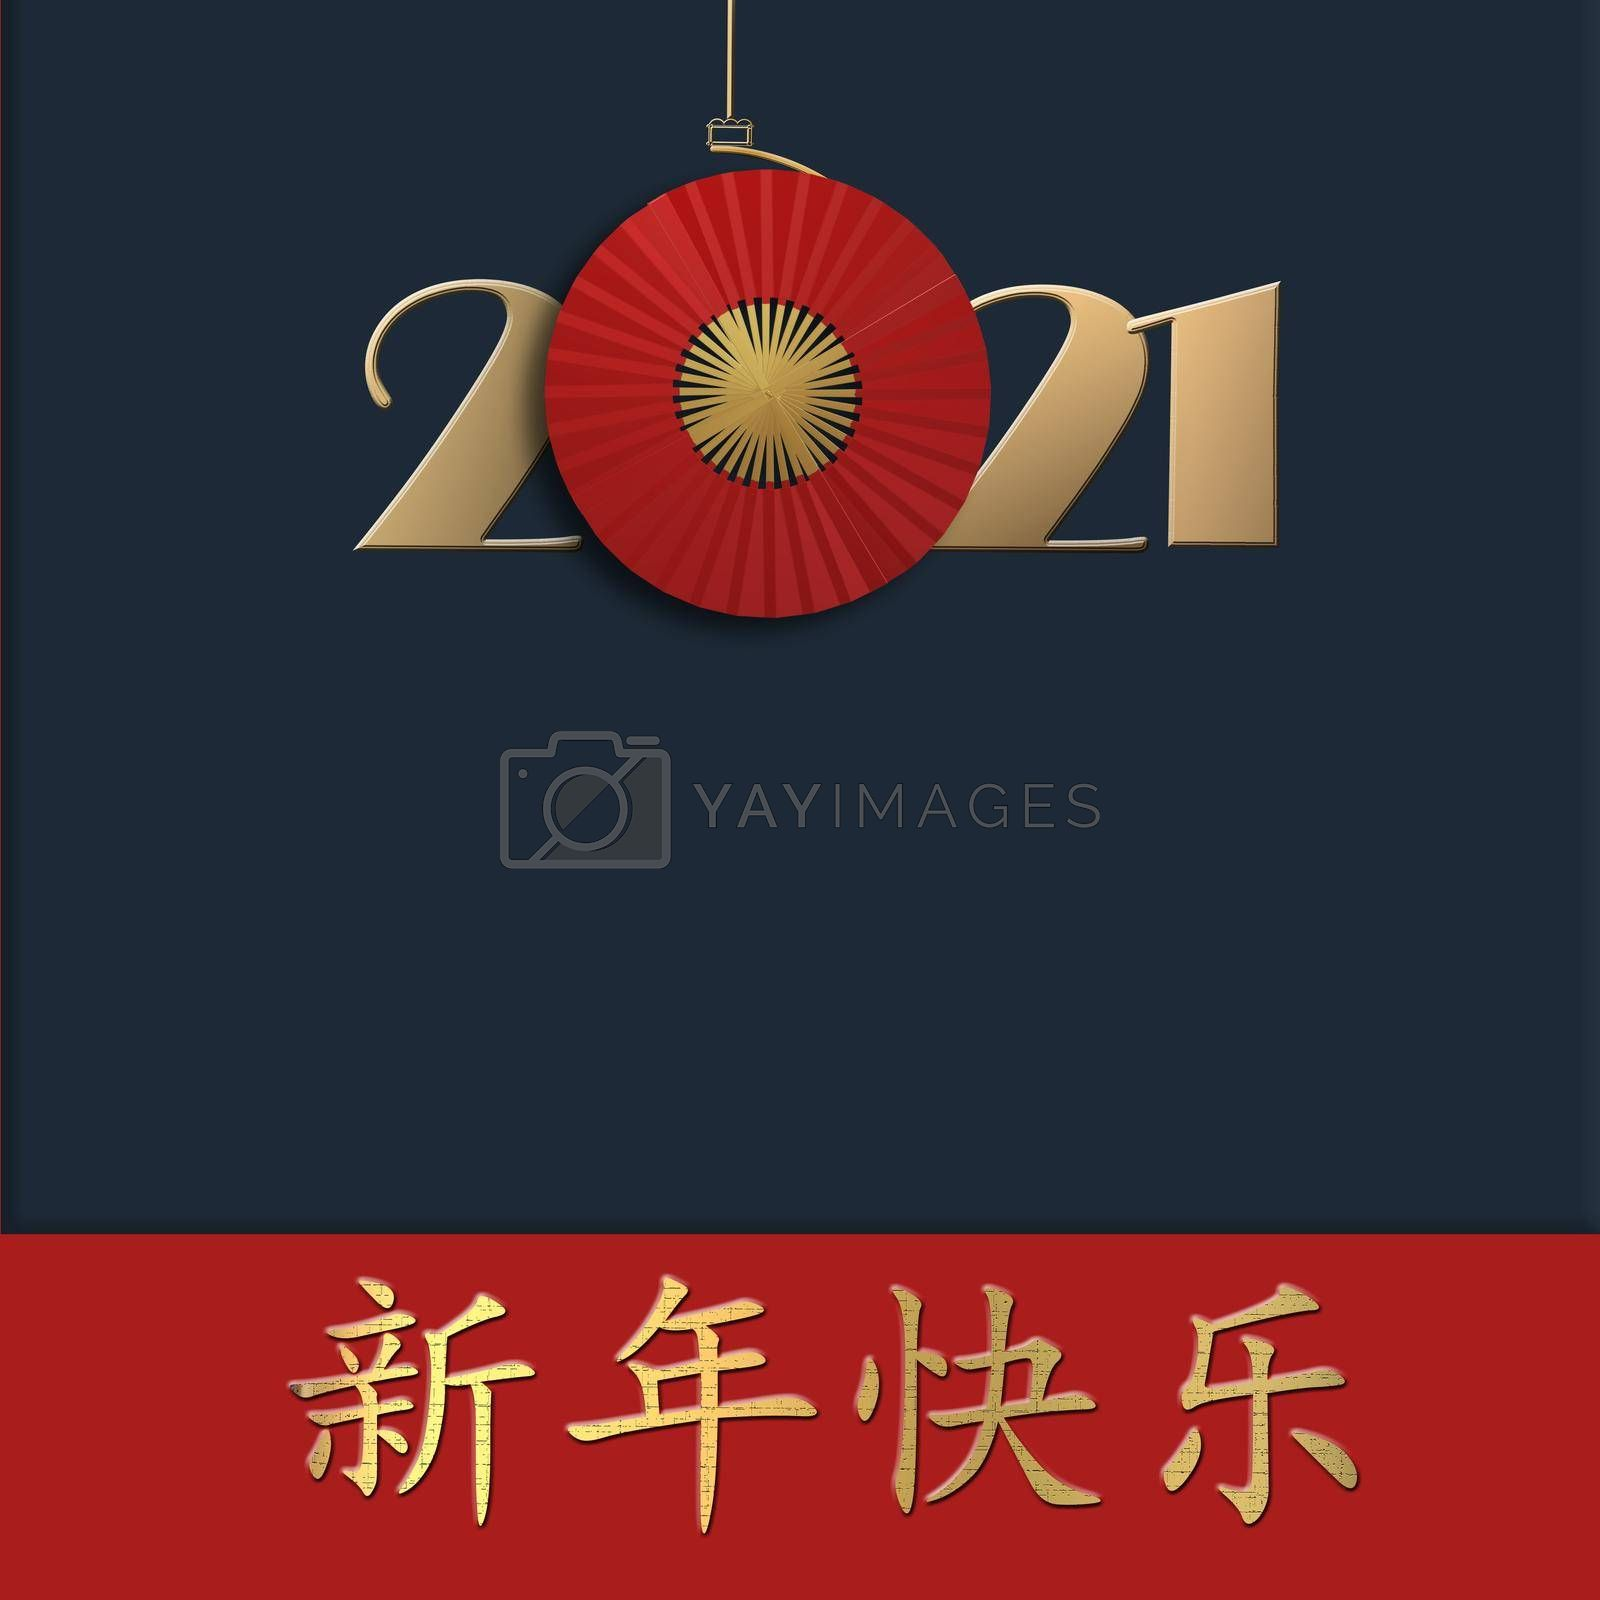 Chinese 2021 new year over blue. Hanging digit 2021 with red fan, Gold text Happy New Year. 3d illustration